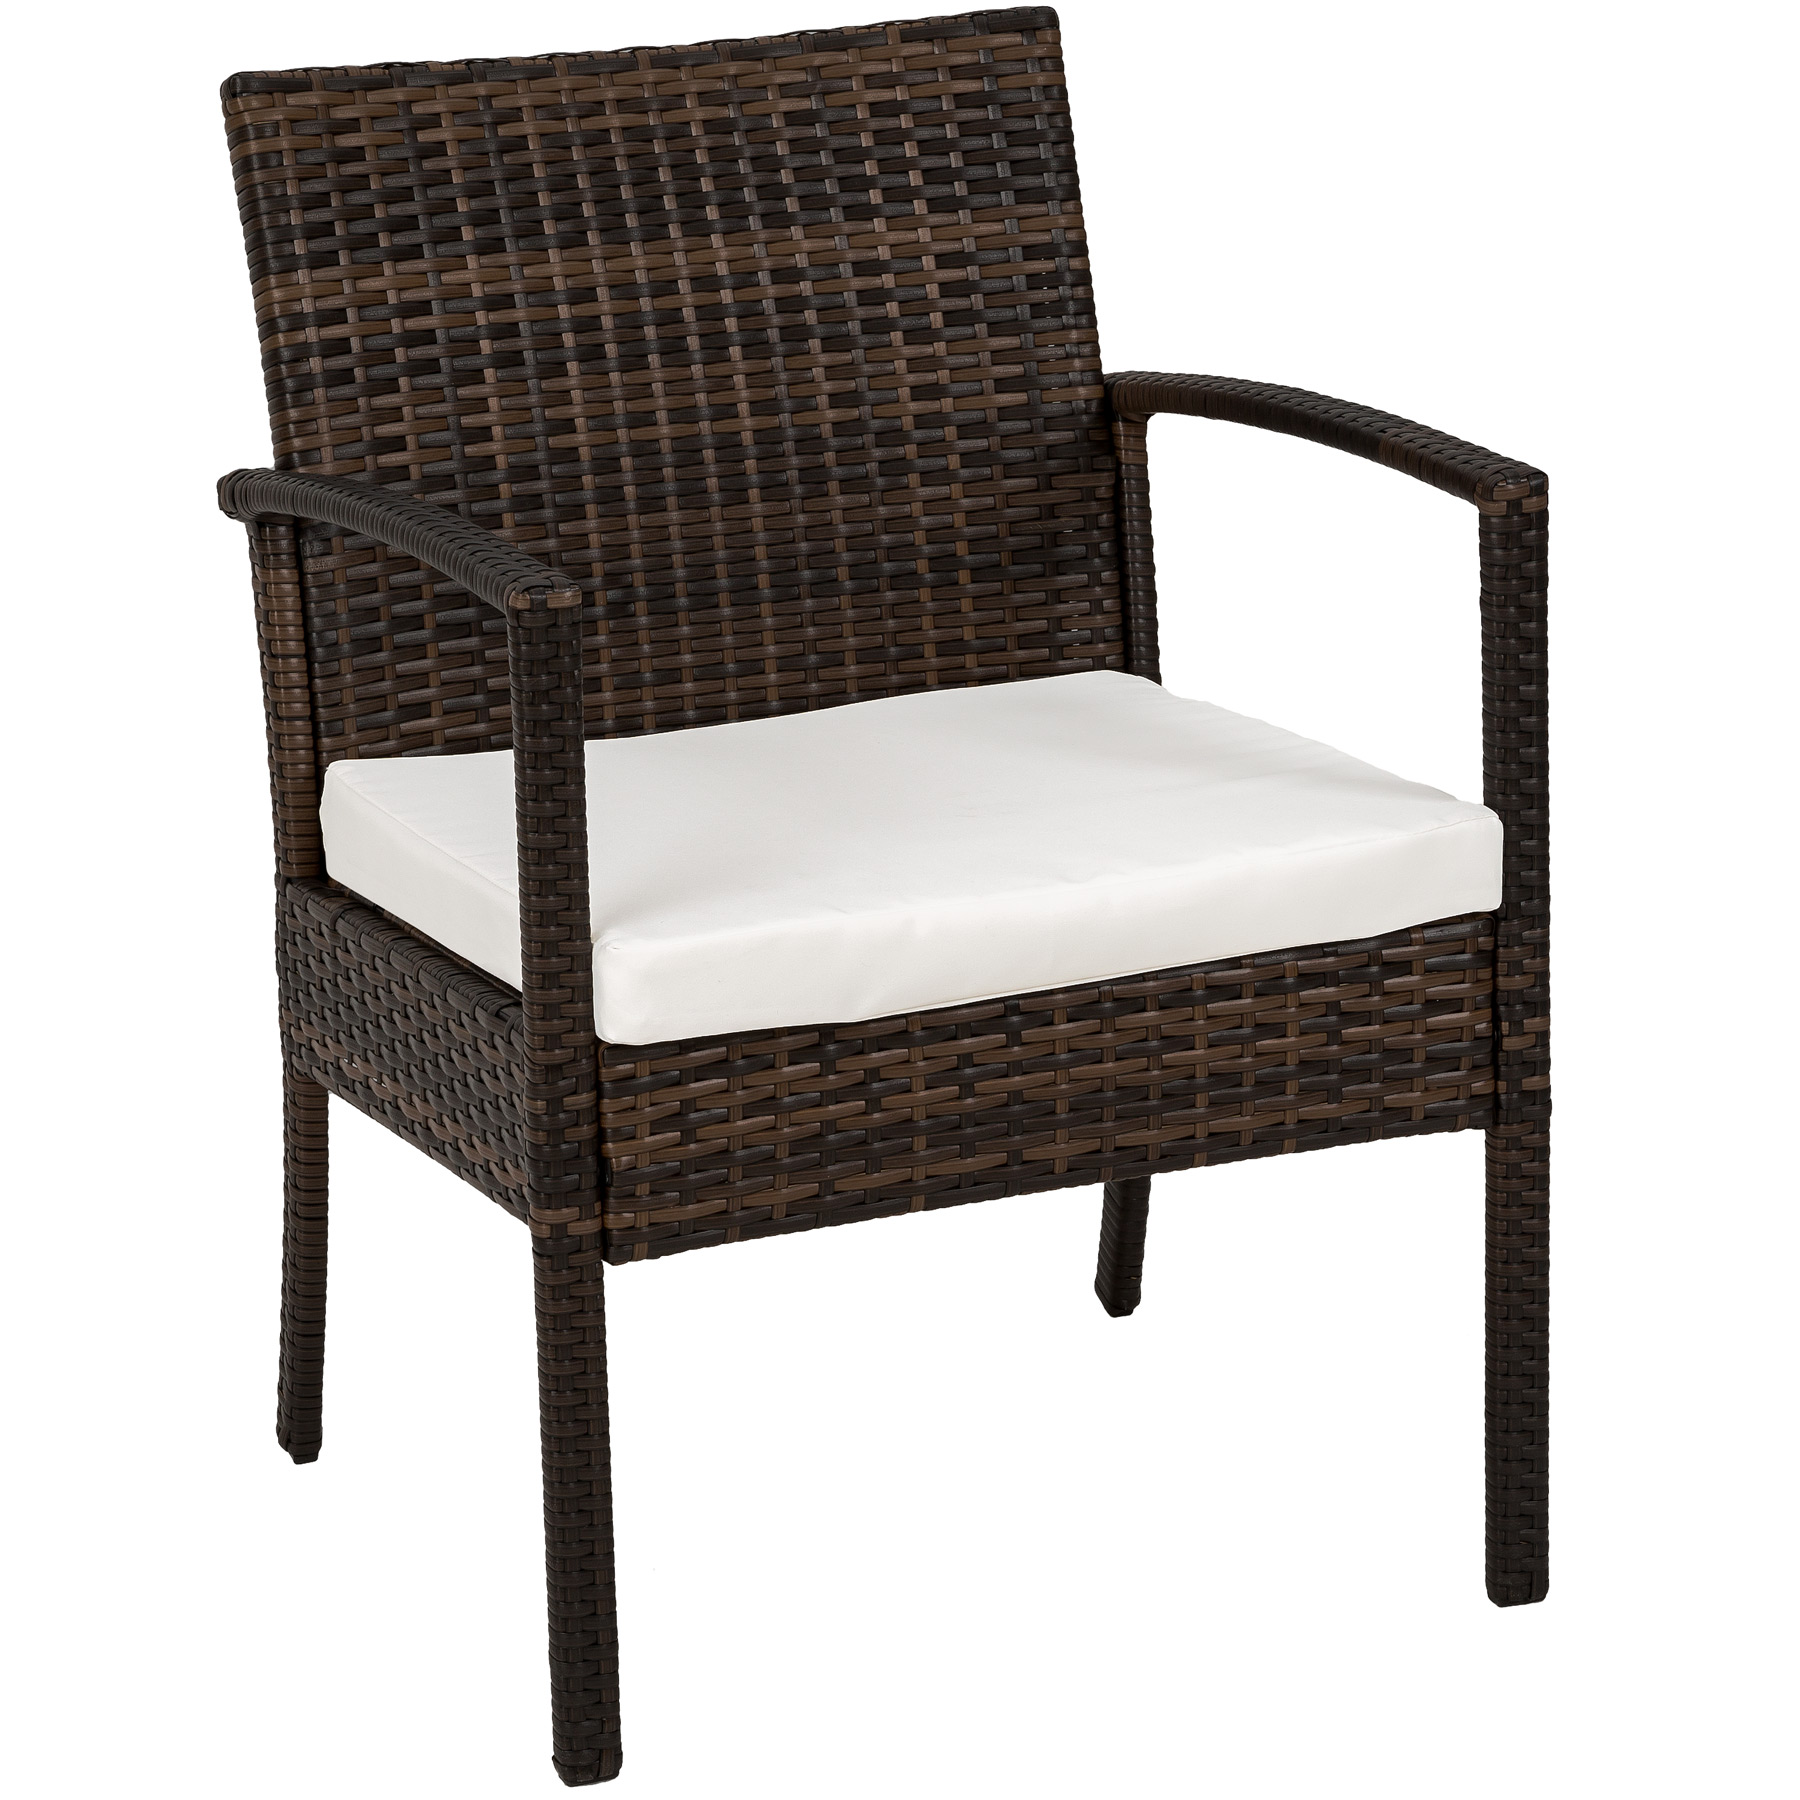 poly rattan garden furniture 2 chairs bench table set. Black Bedroom Furniture Sets. Home Design Ideas